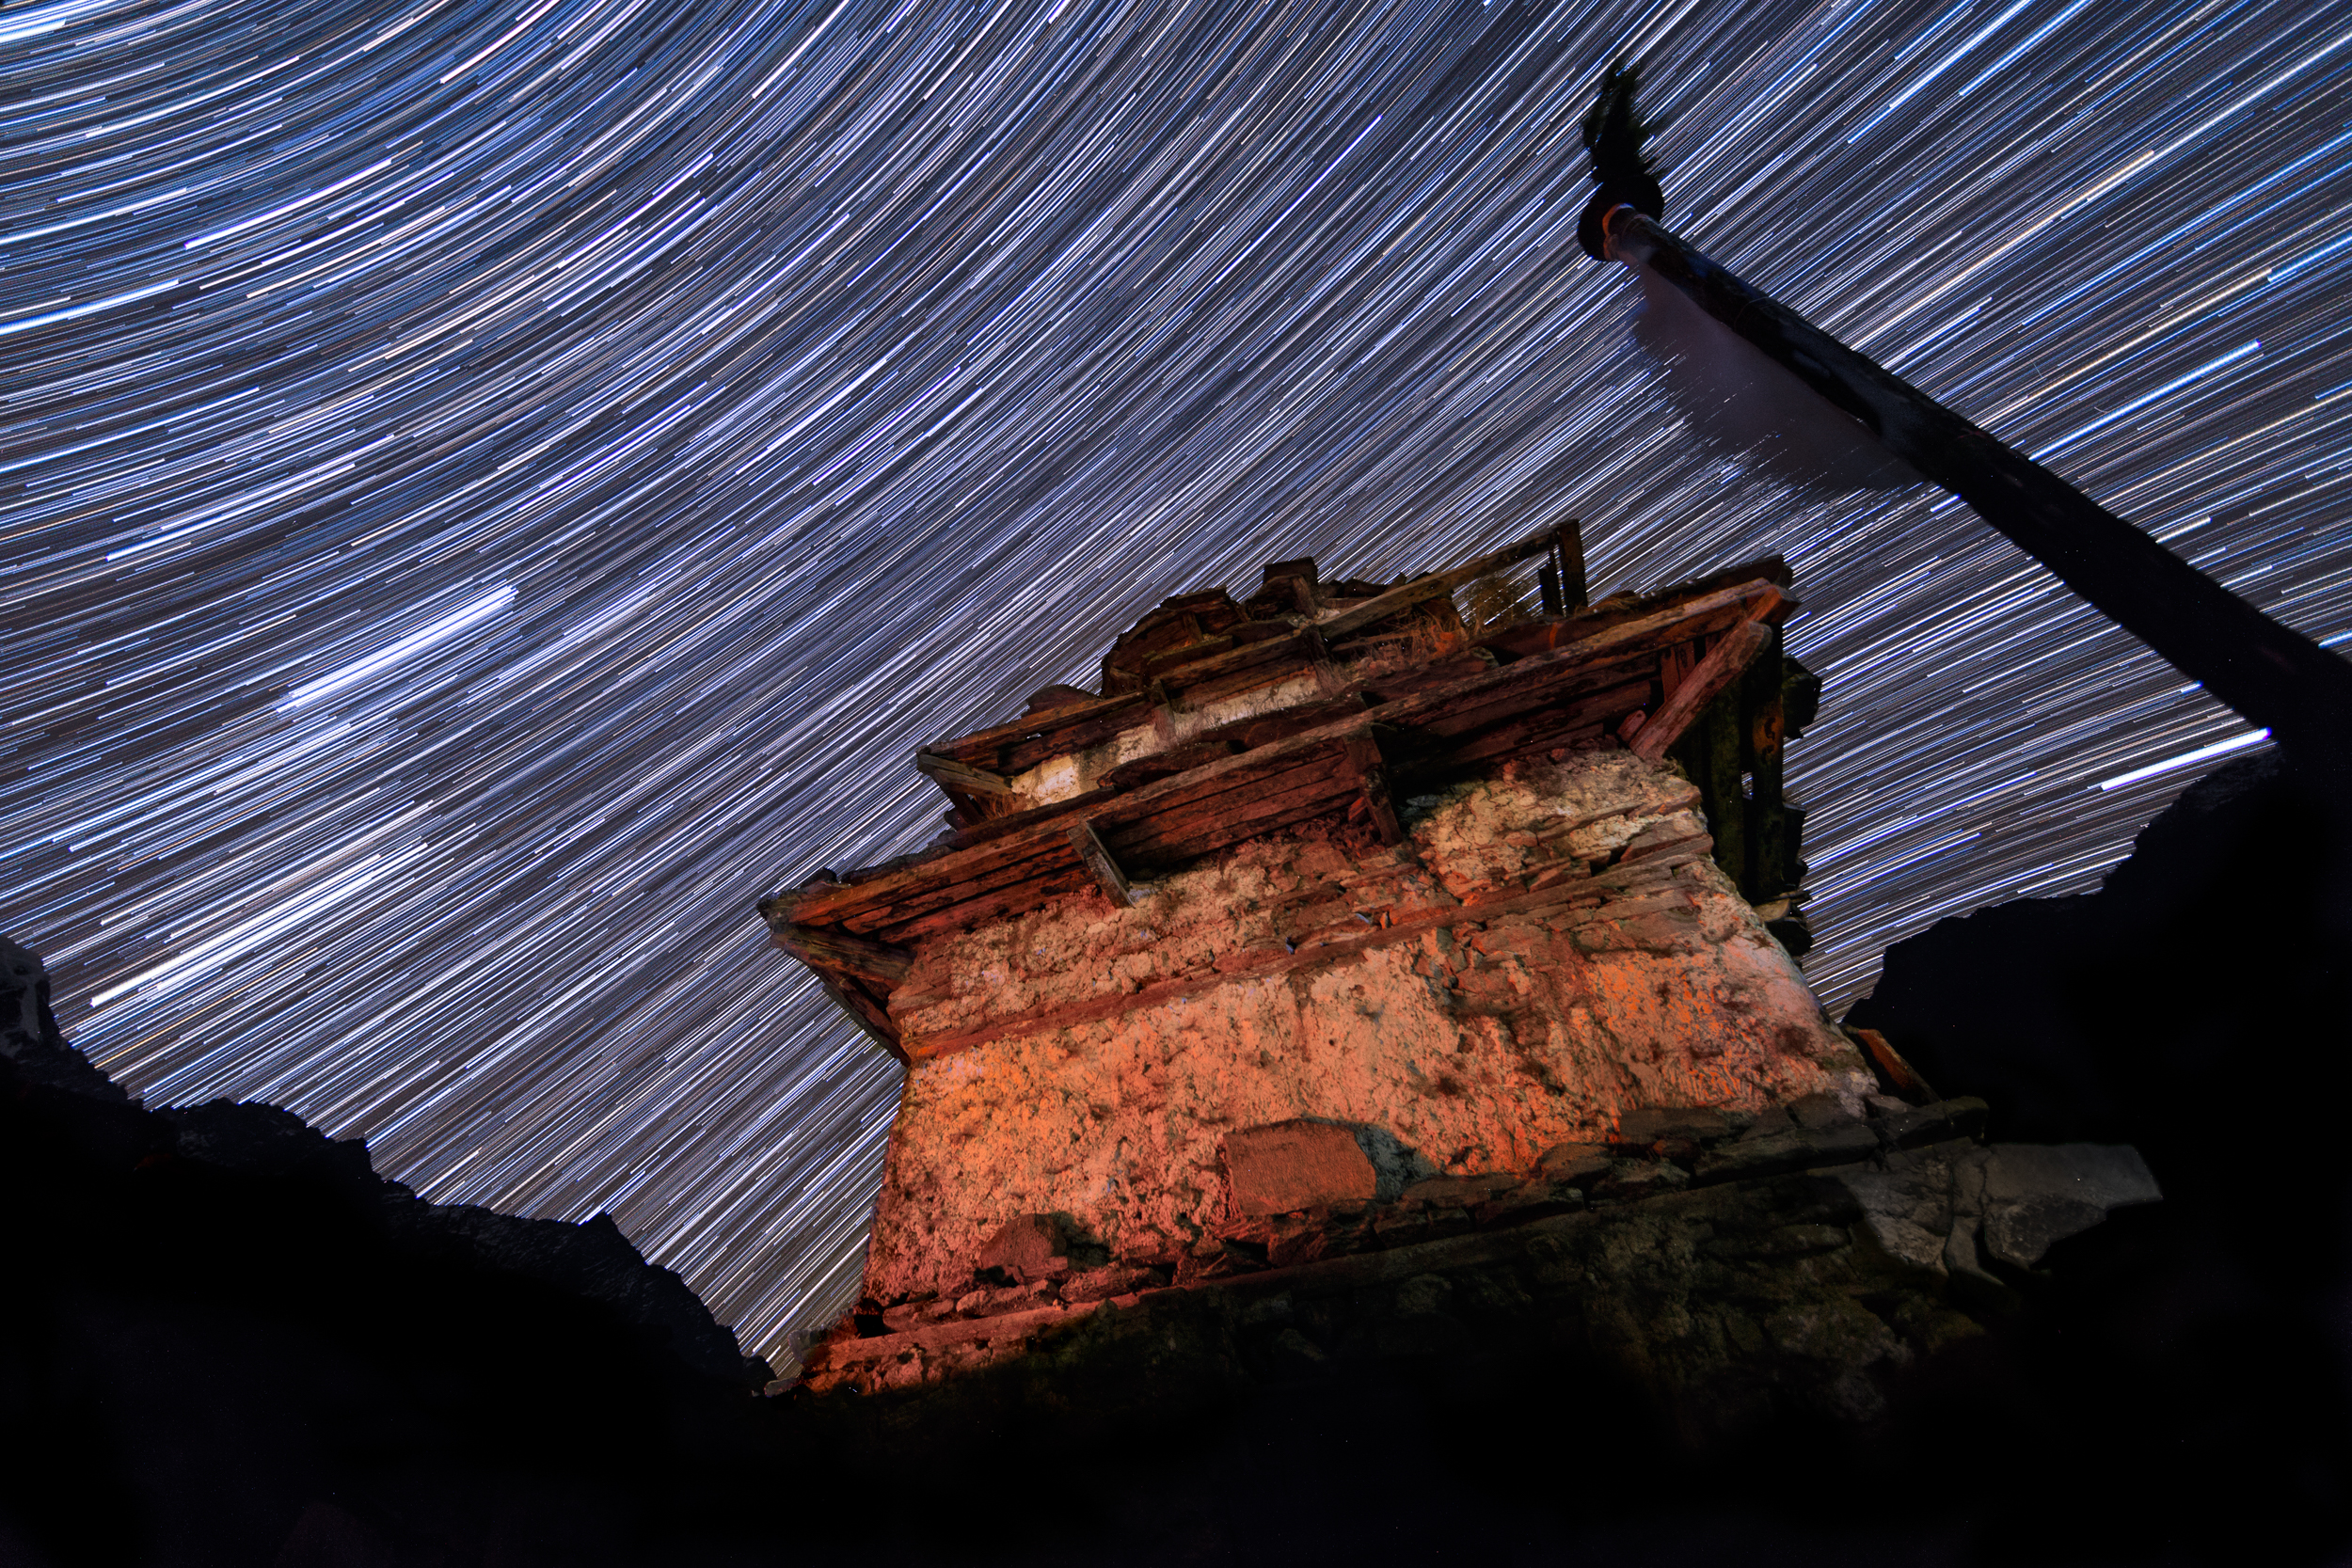 Star trails above a Buddhist stupa on a chilly night in Prok.